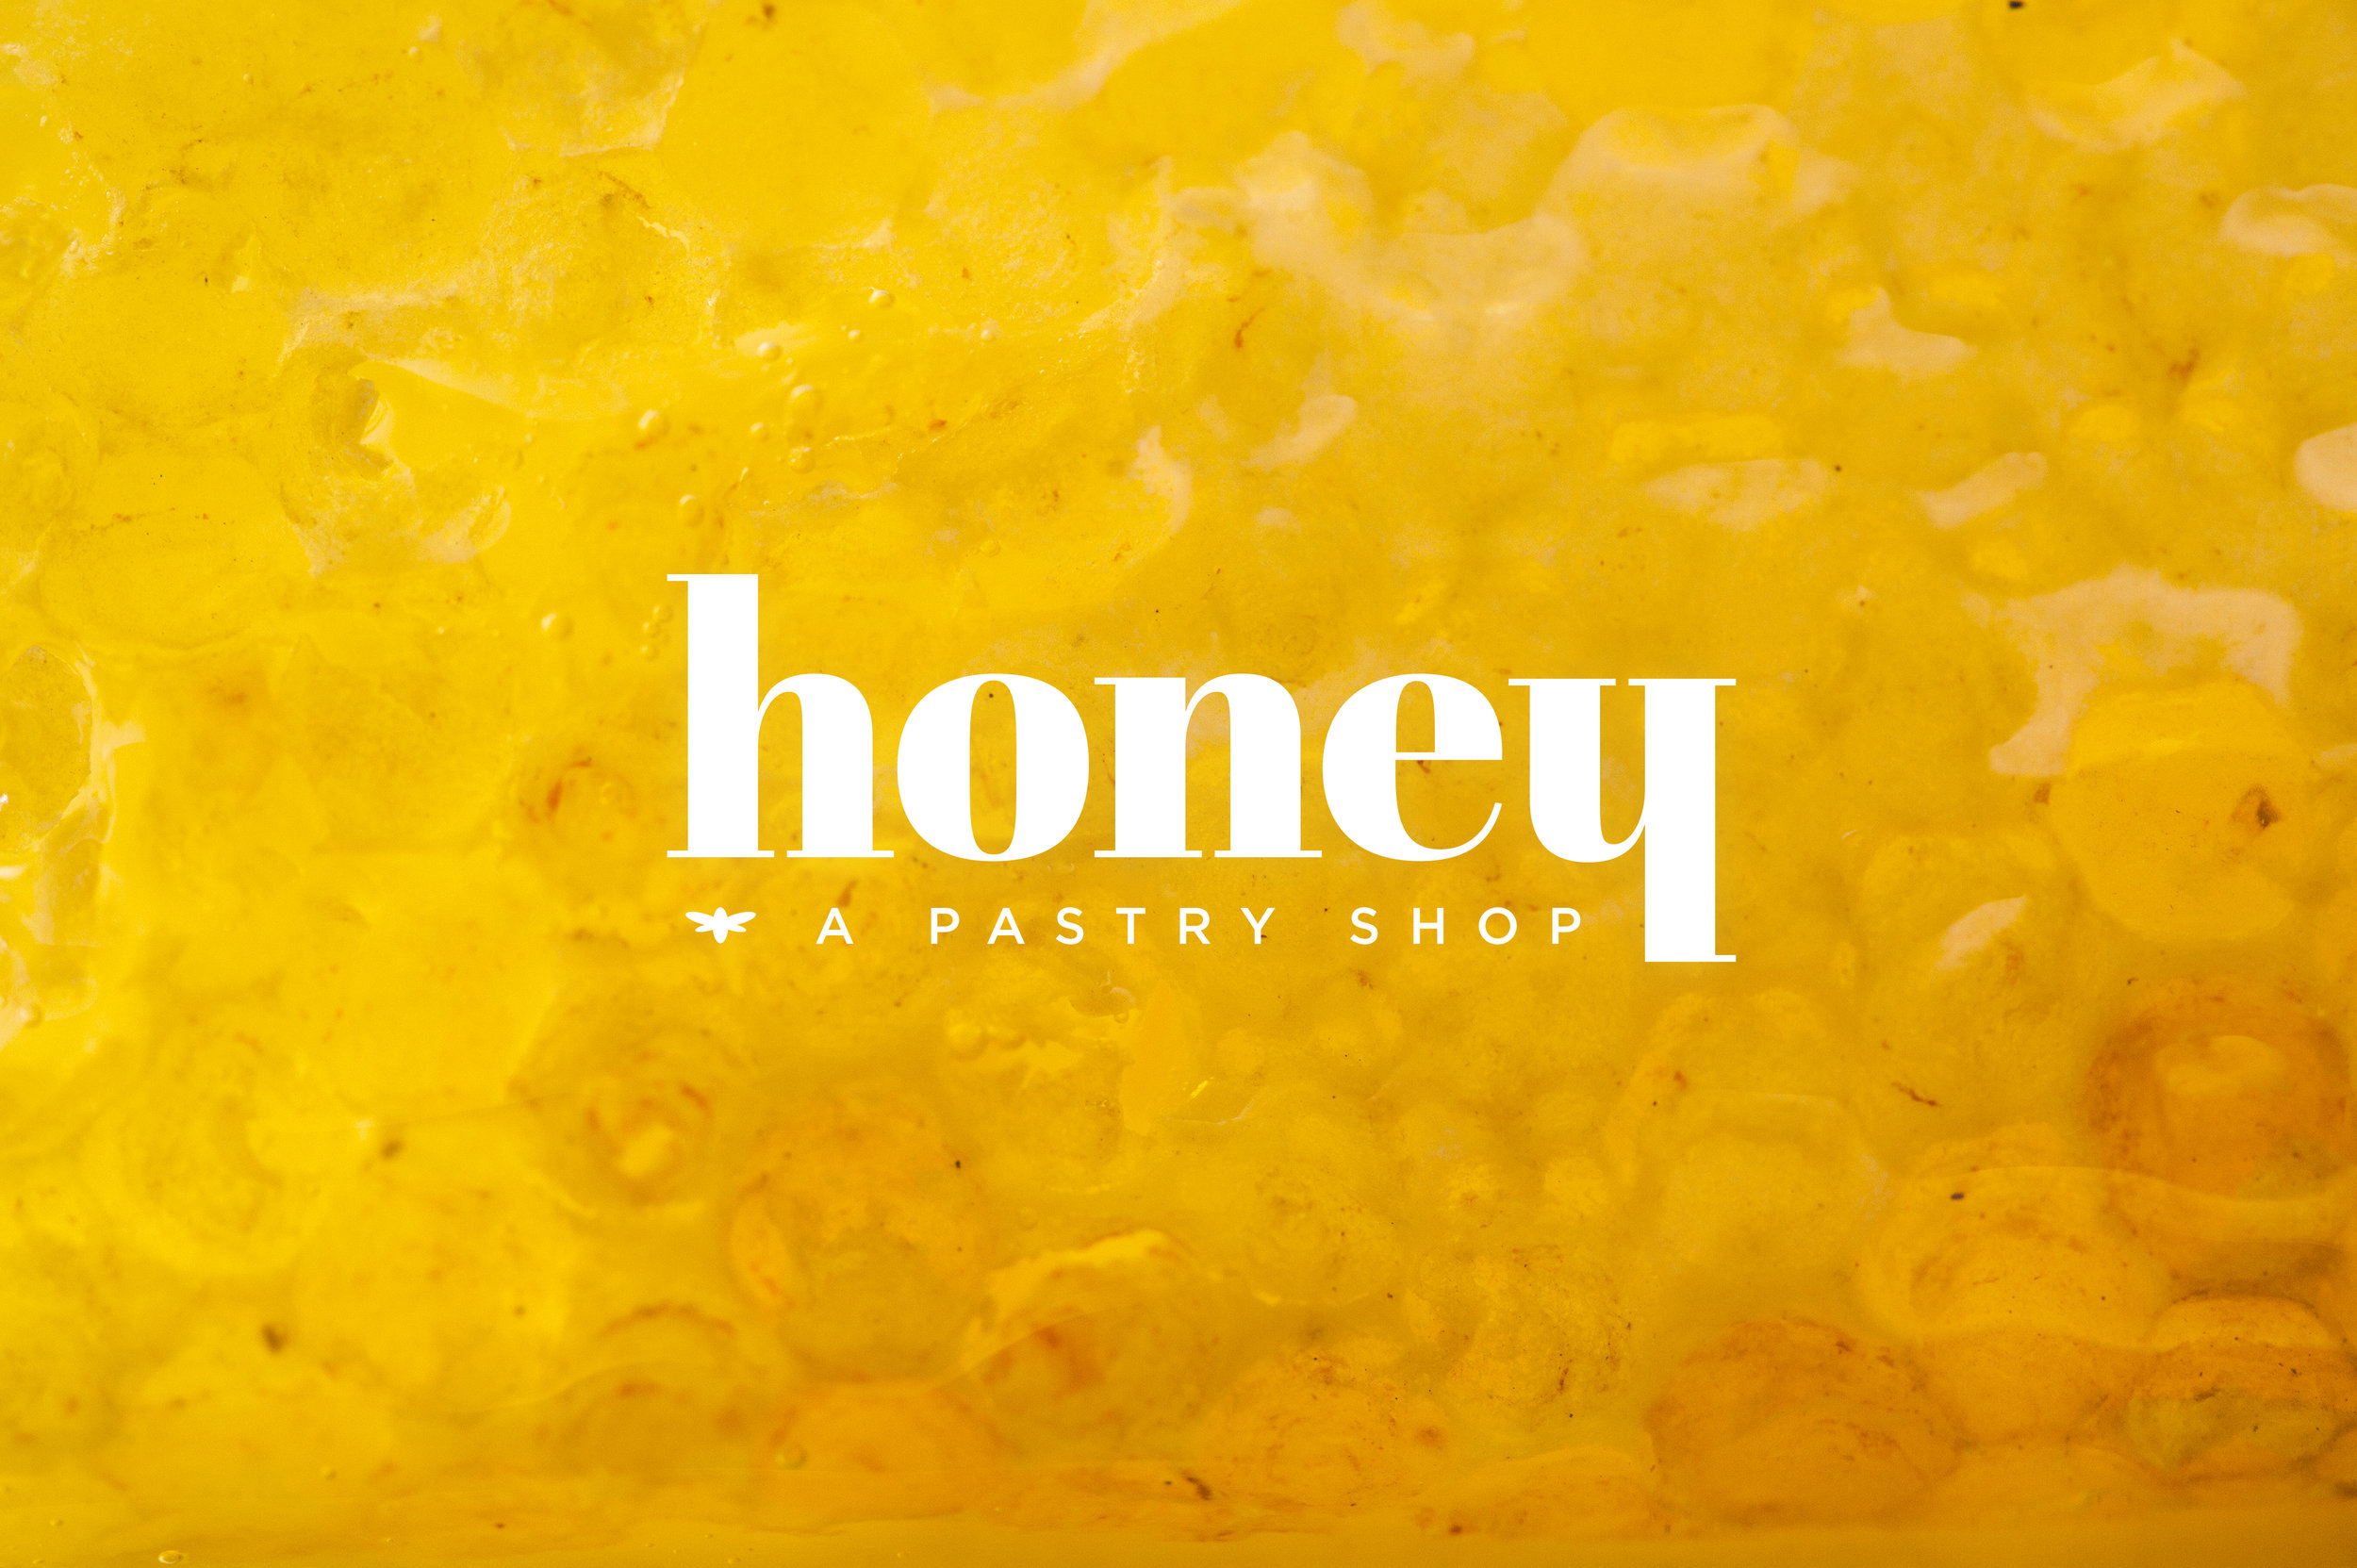 Brand Identity for a fictional pastry shop.